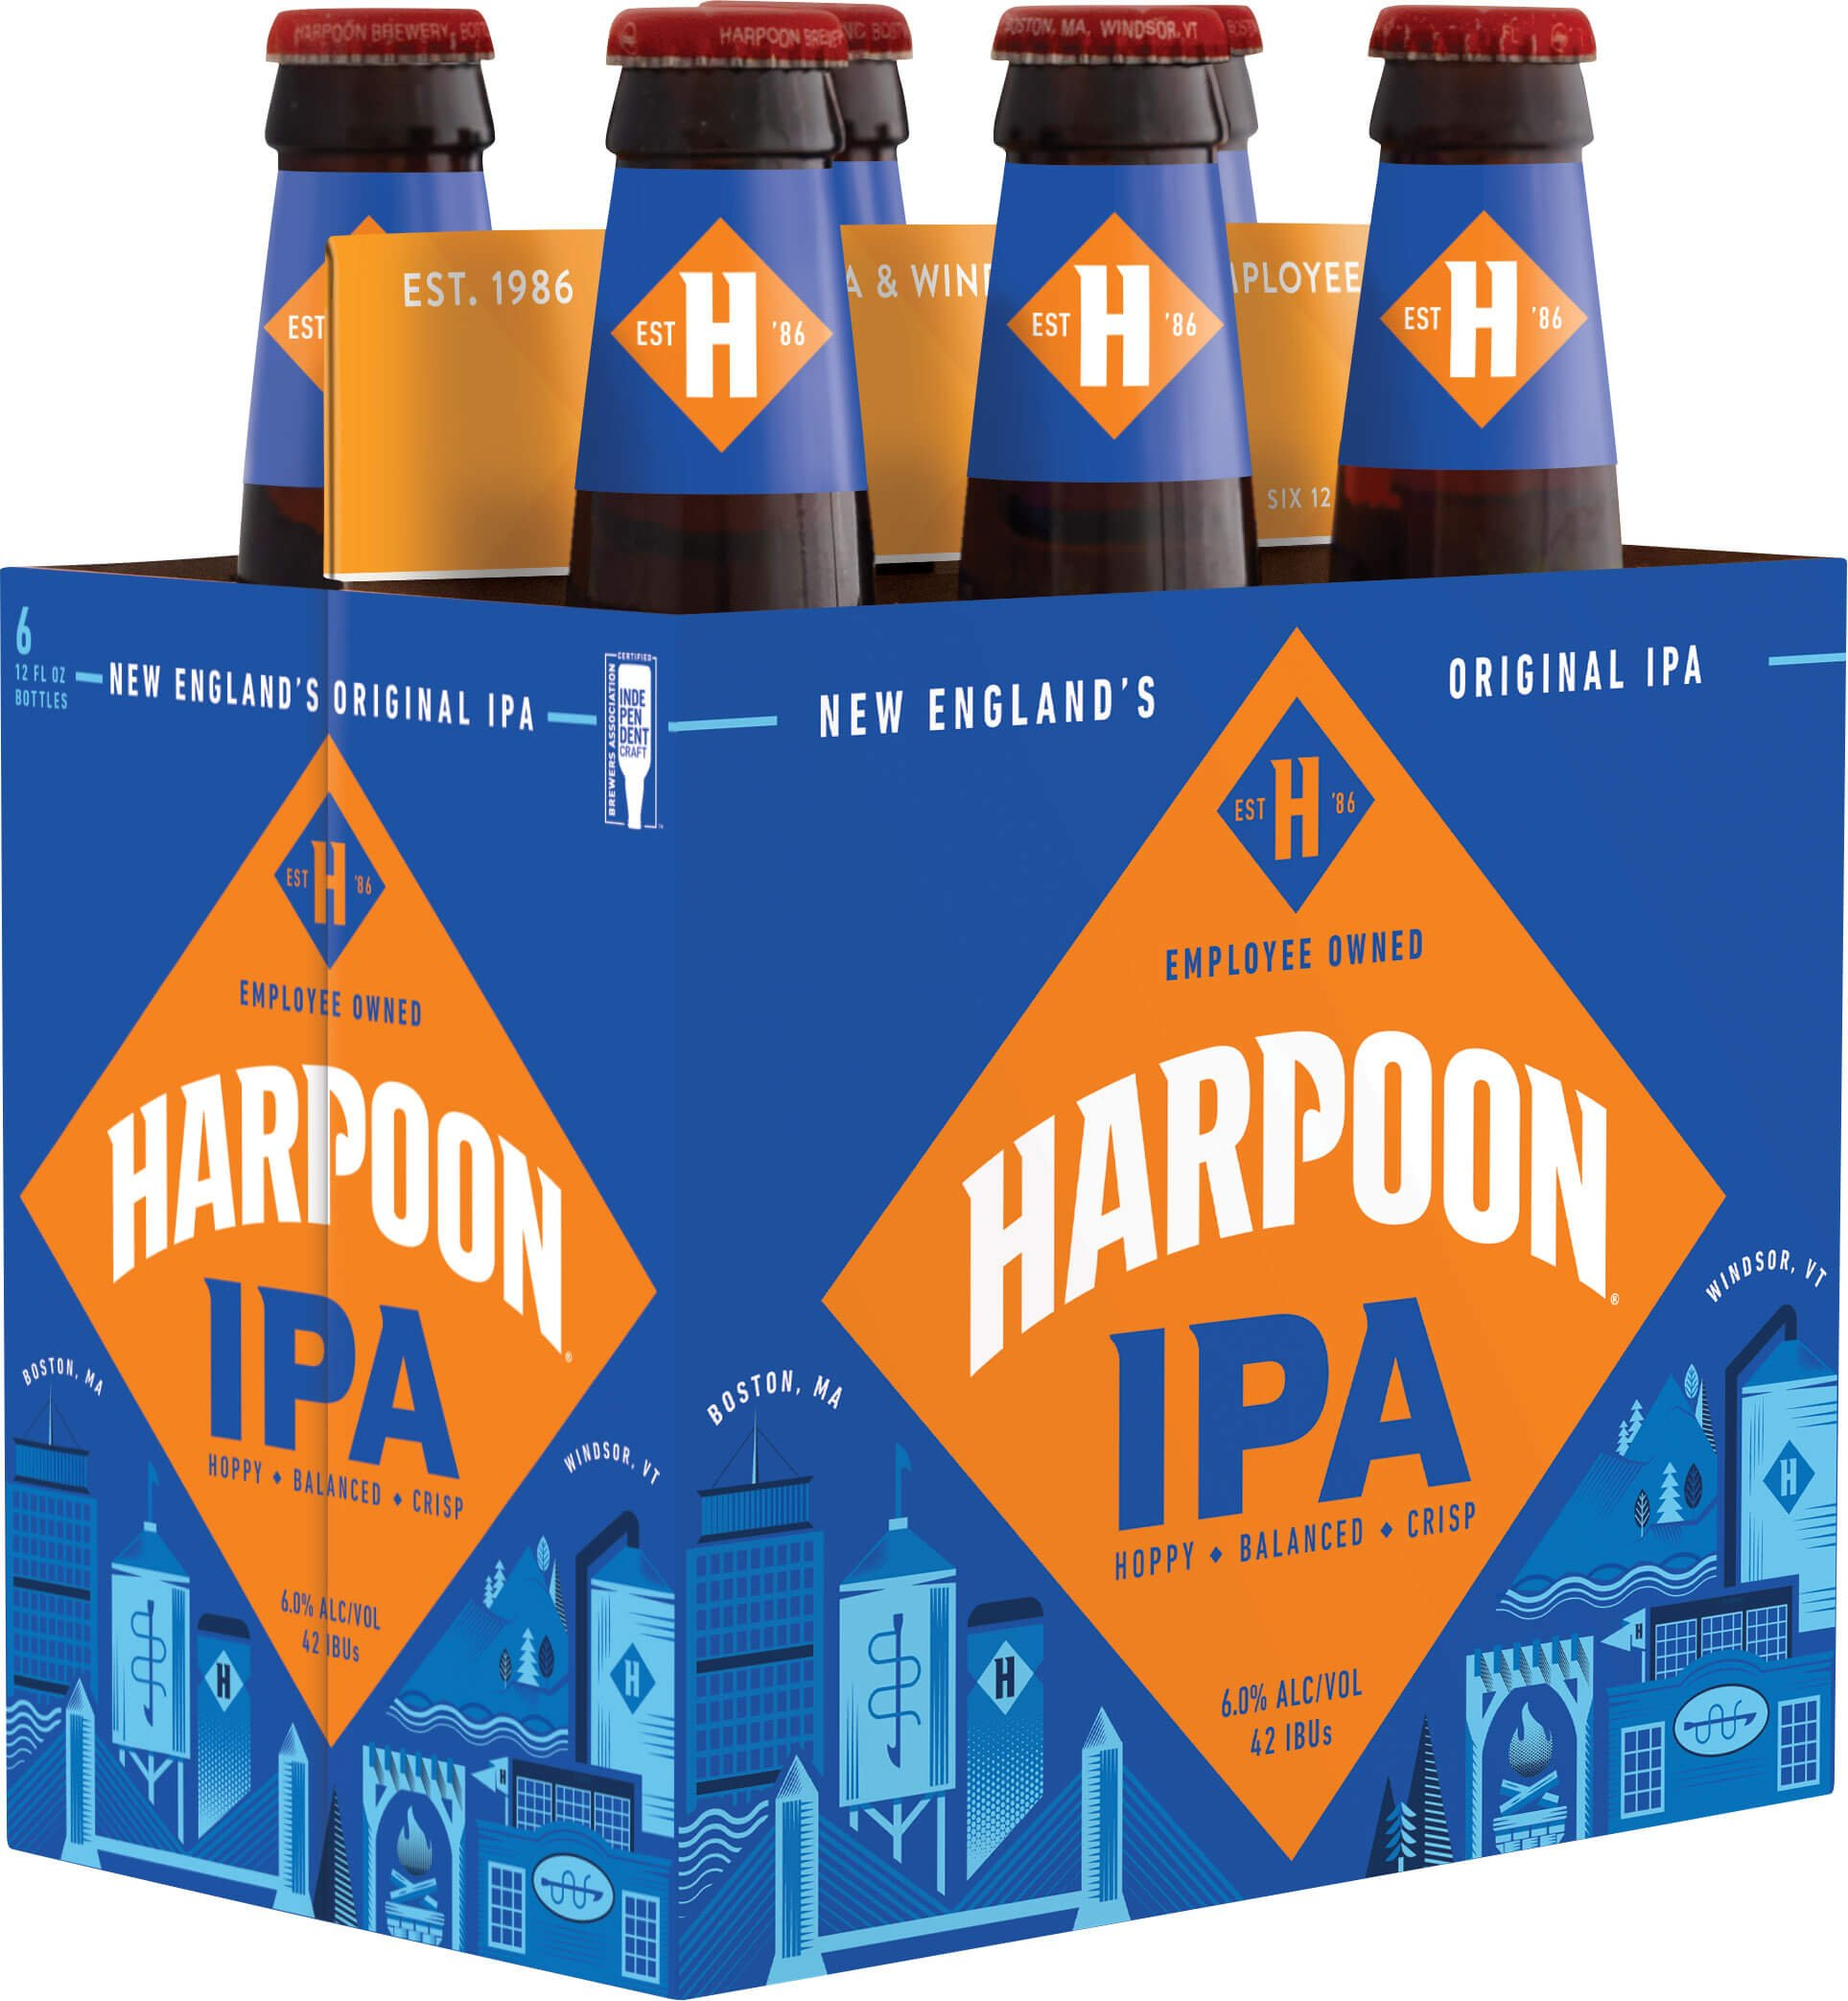 Packaging design for six packs of 12 oz. bottles of the Harpoon IPA by Harpoon Brewery